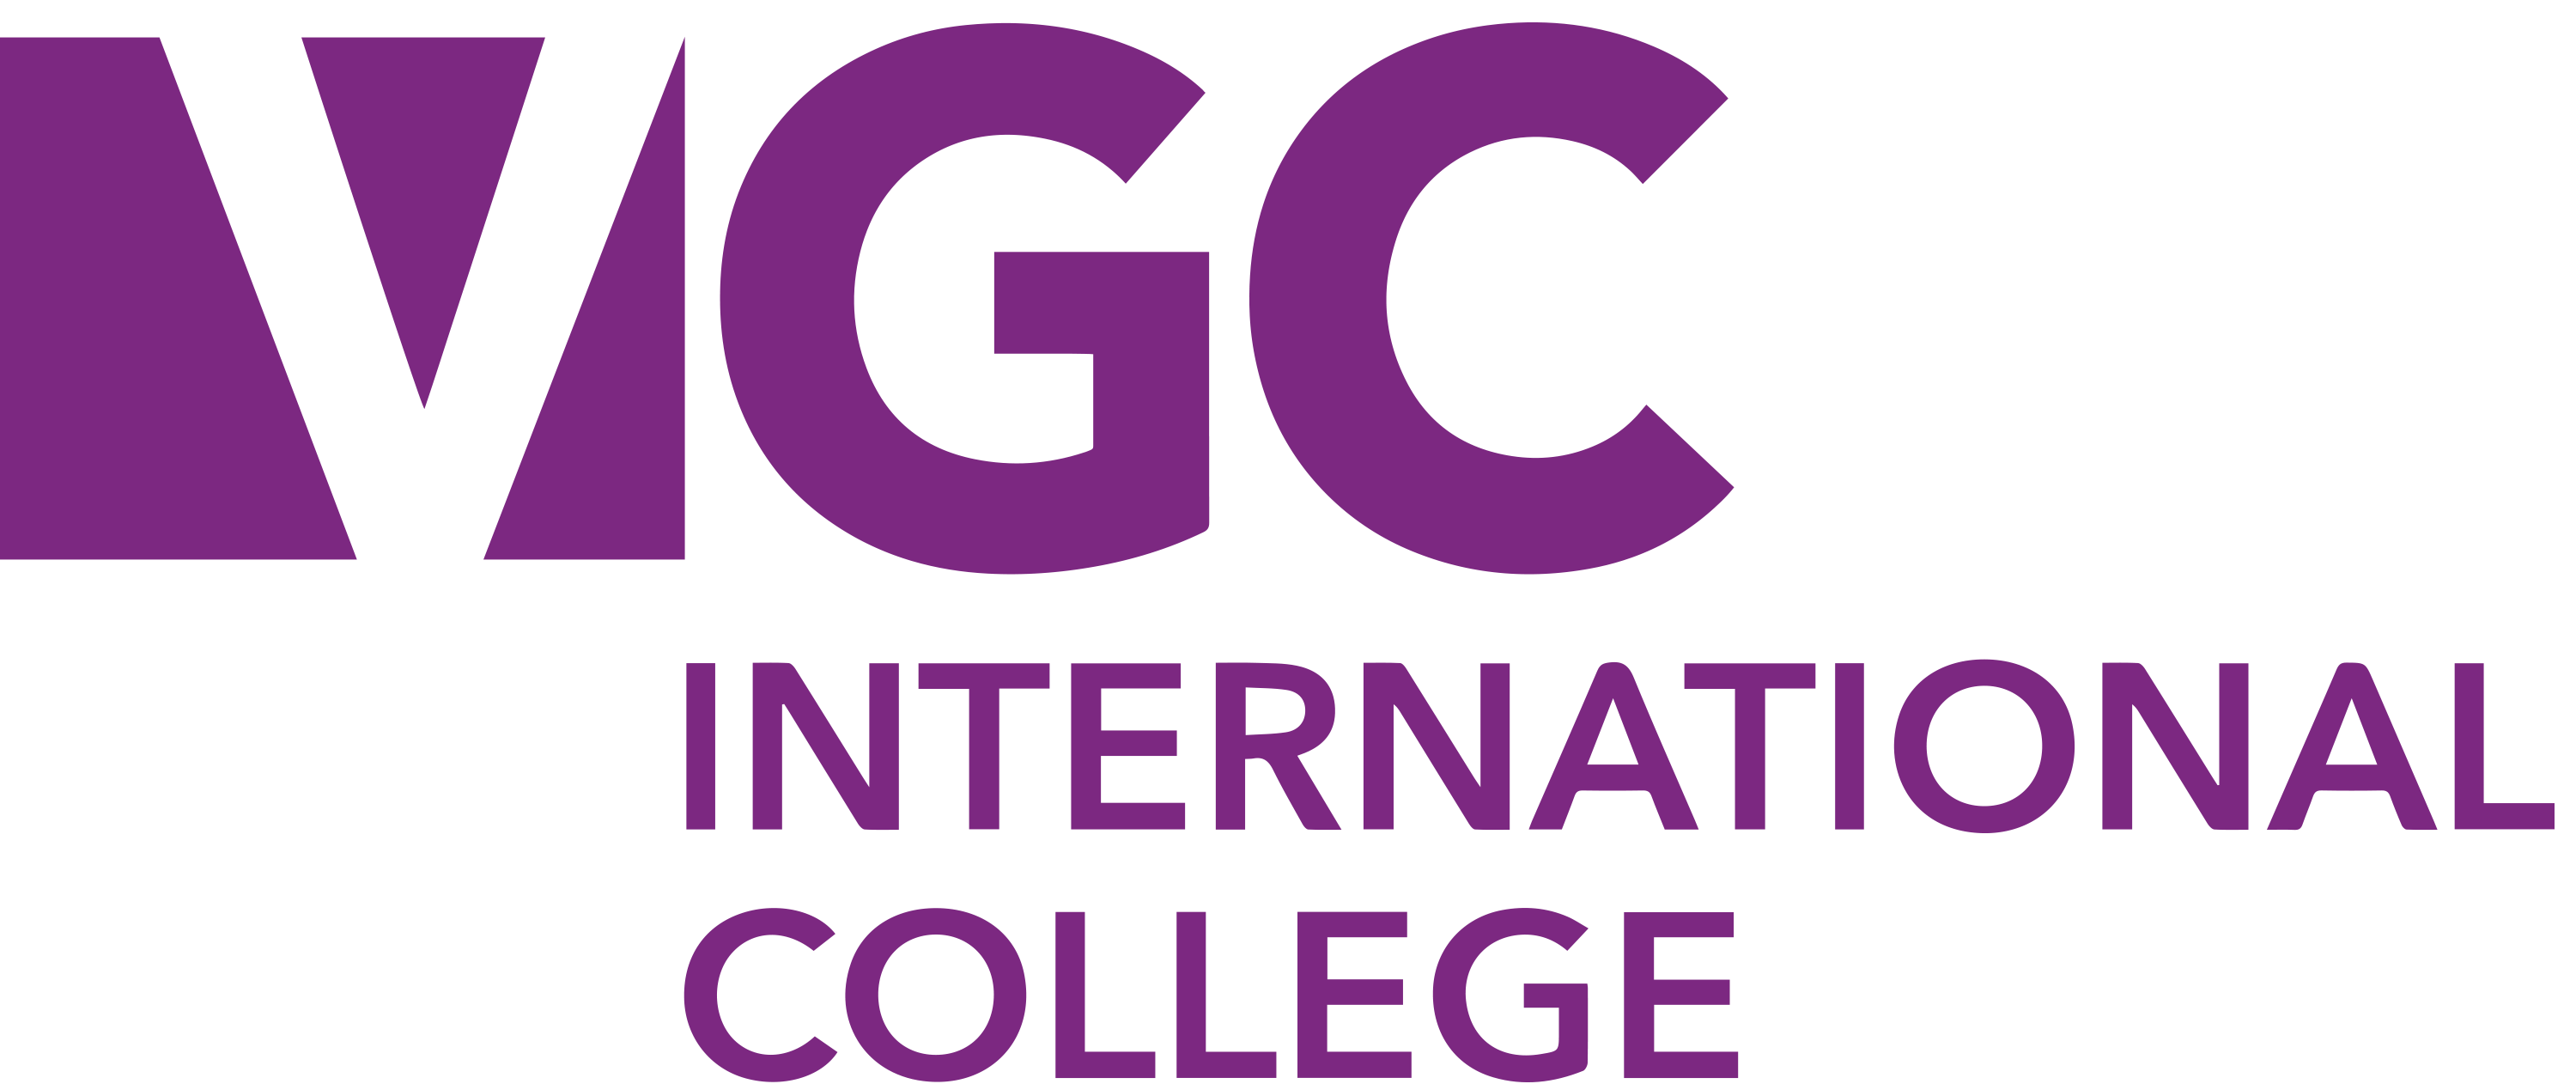 VGC International College - Logo_Purple_PNG